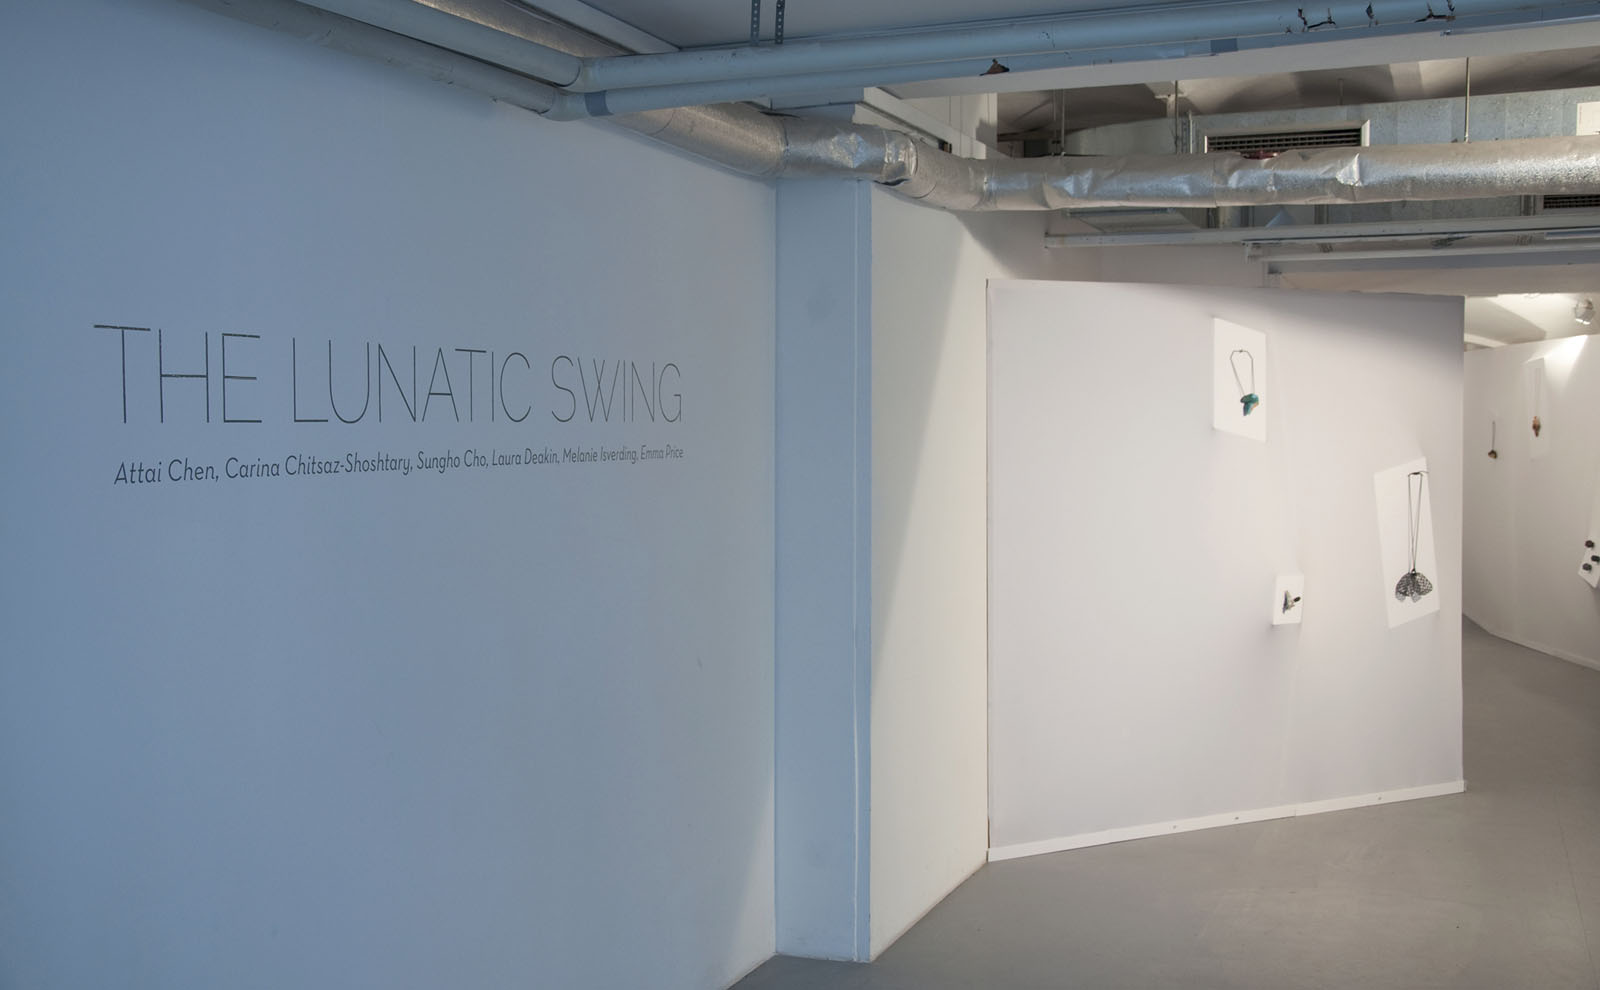 """The Lunatic Swing"" I 2013 I A group show of Attai Chen, Sungho Cho, Laura Deakin, Melanie Isverding, Emma Price and Carina Shoshtary I Kunstarkaden, Munich, Germany I Photo: Mirei Takeuchi"